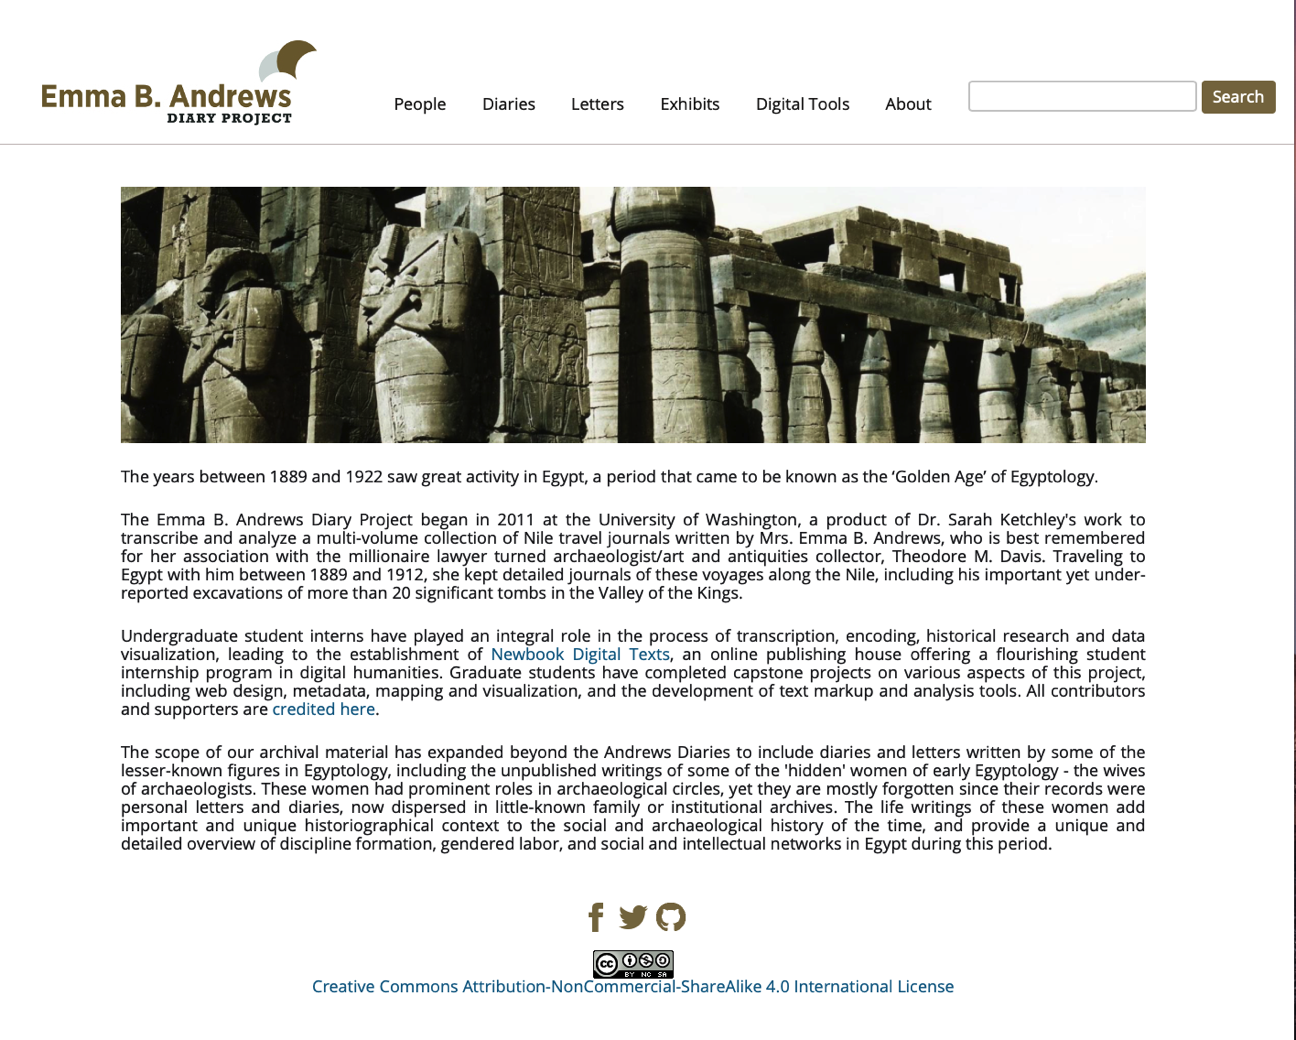 Emma B. Andrews Diary Project Website Redesign